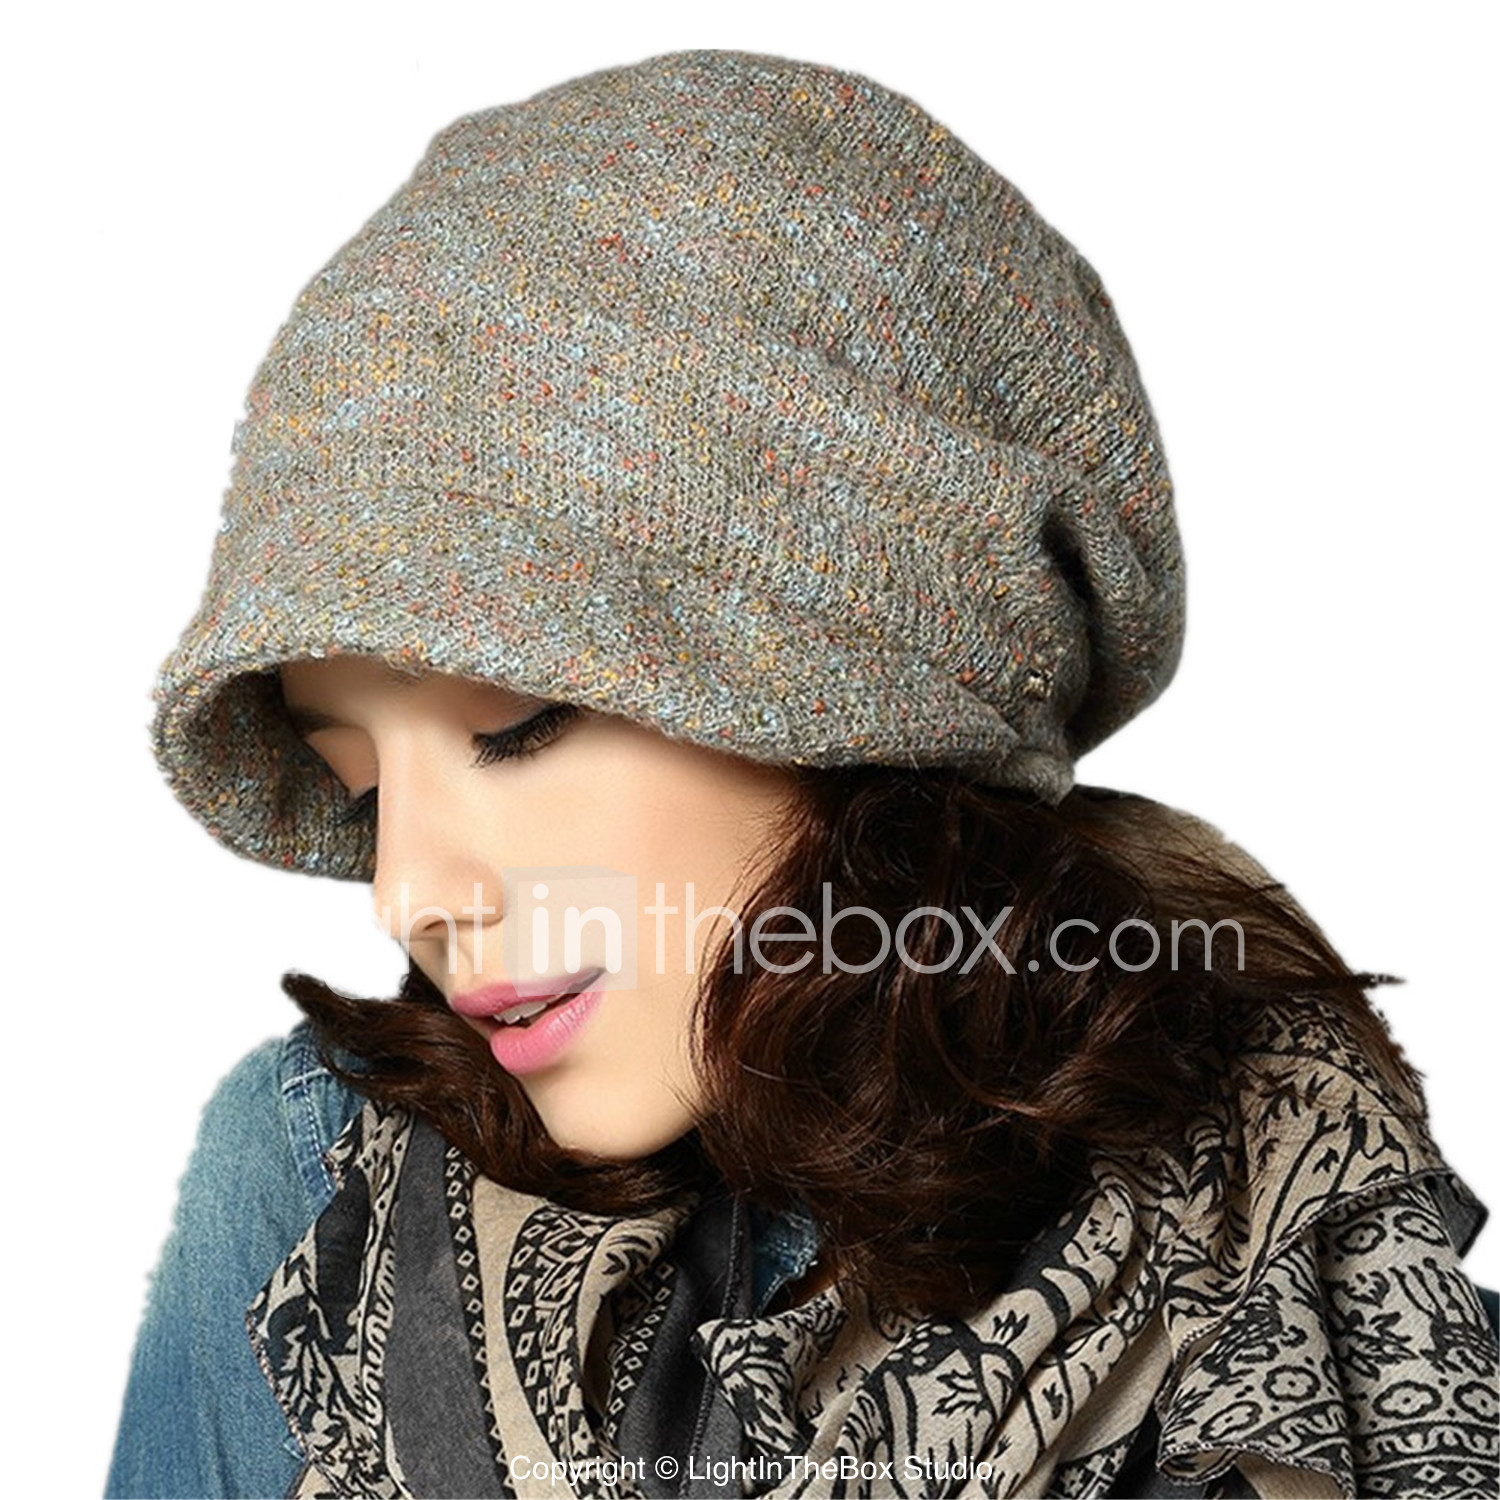 248272538a2f2 Kenmont Winter Cap Women Autumn Winter Beret Korean Knitted Hat Fashion  Piel Cap 1516  03227522